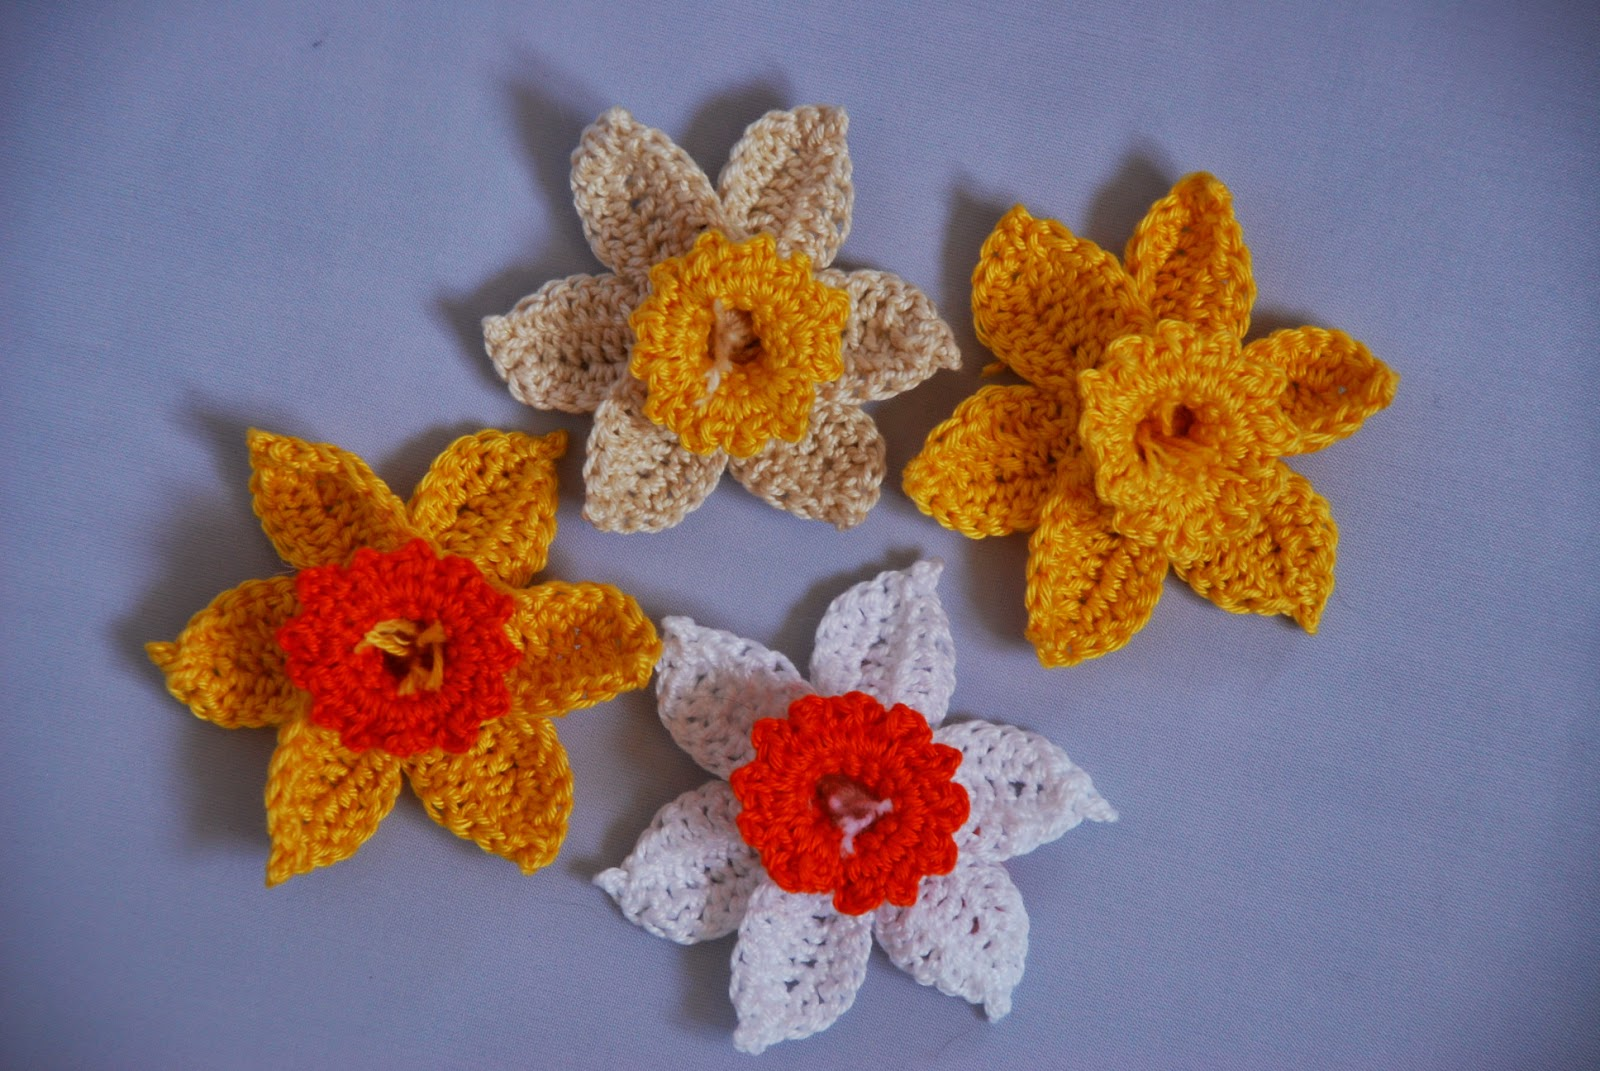 Crochet Daffodil pattern and tutorial: image of four different coloured daffodils